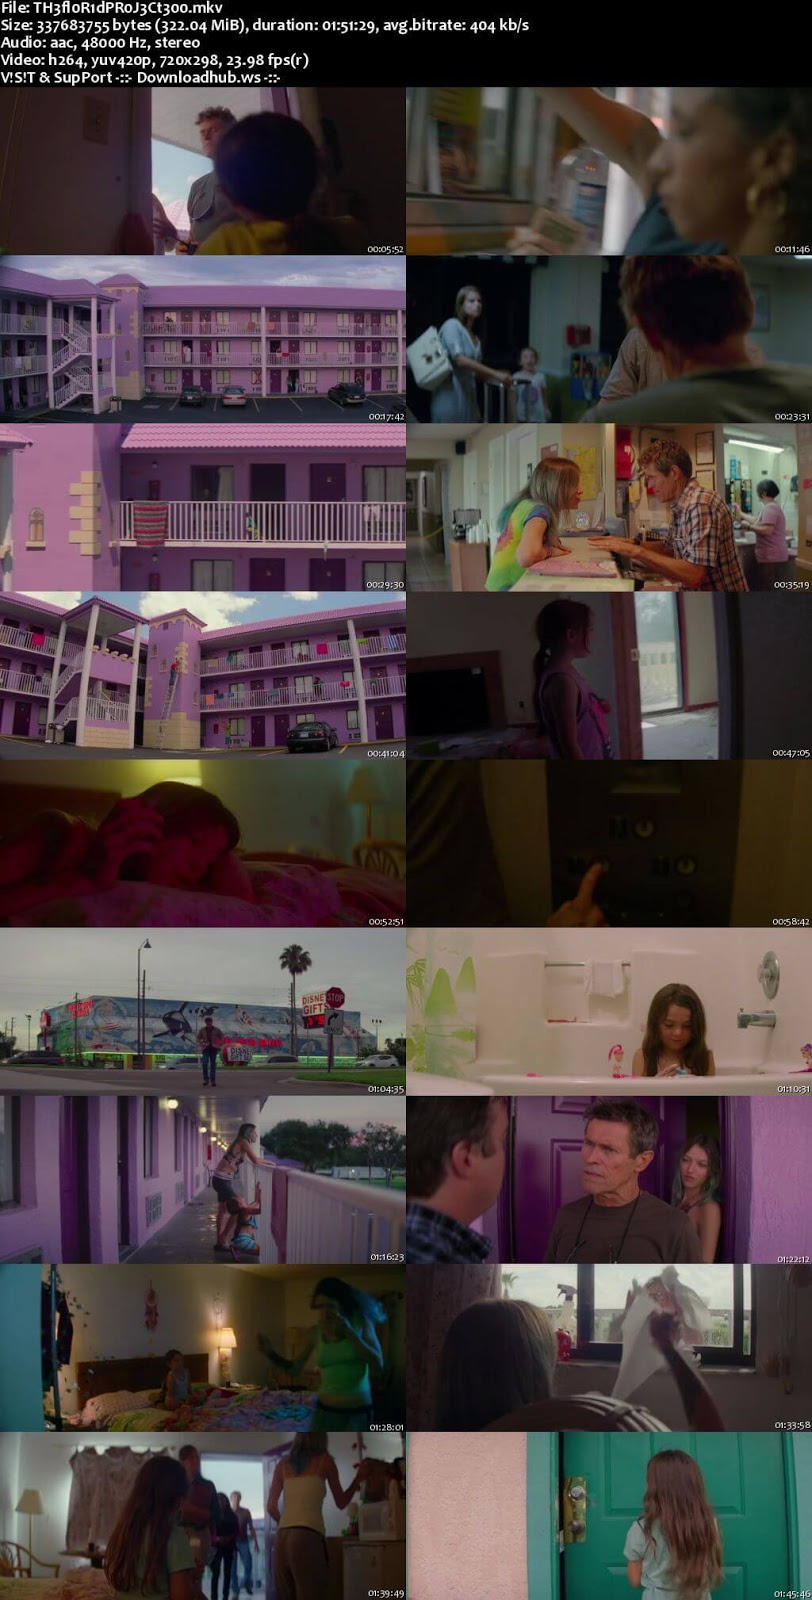 The Florida Project 2017 English 480p Web-DL ESubs